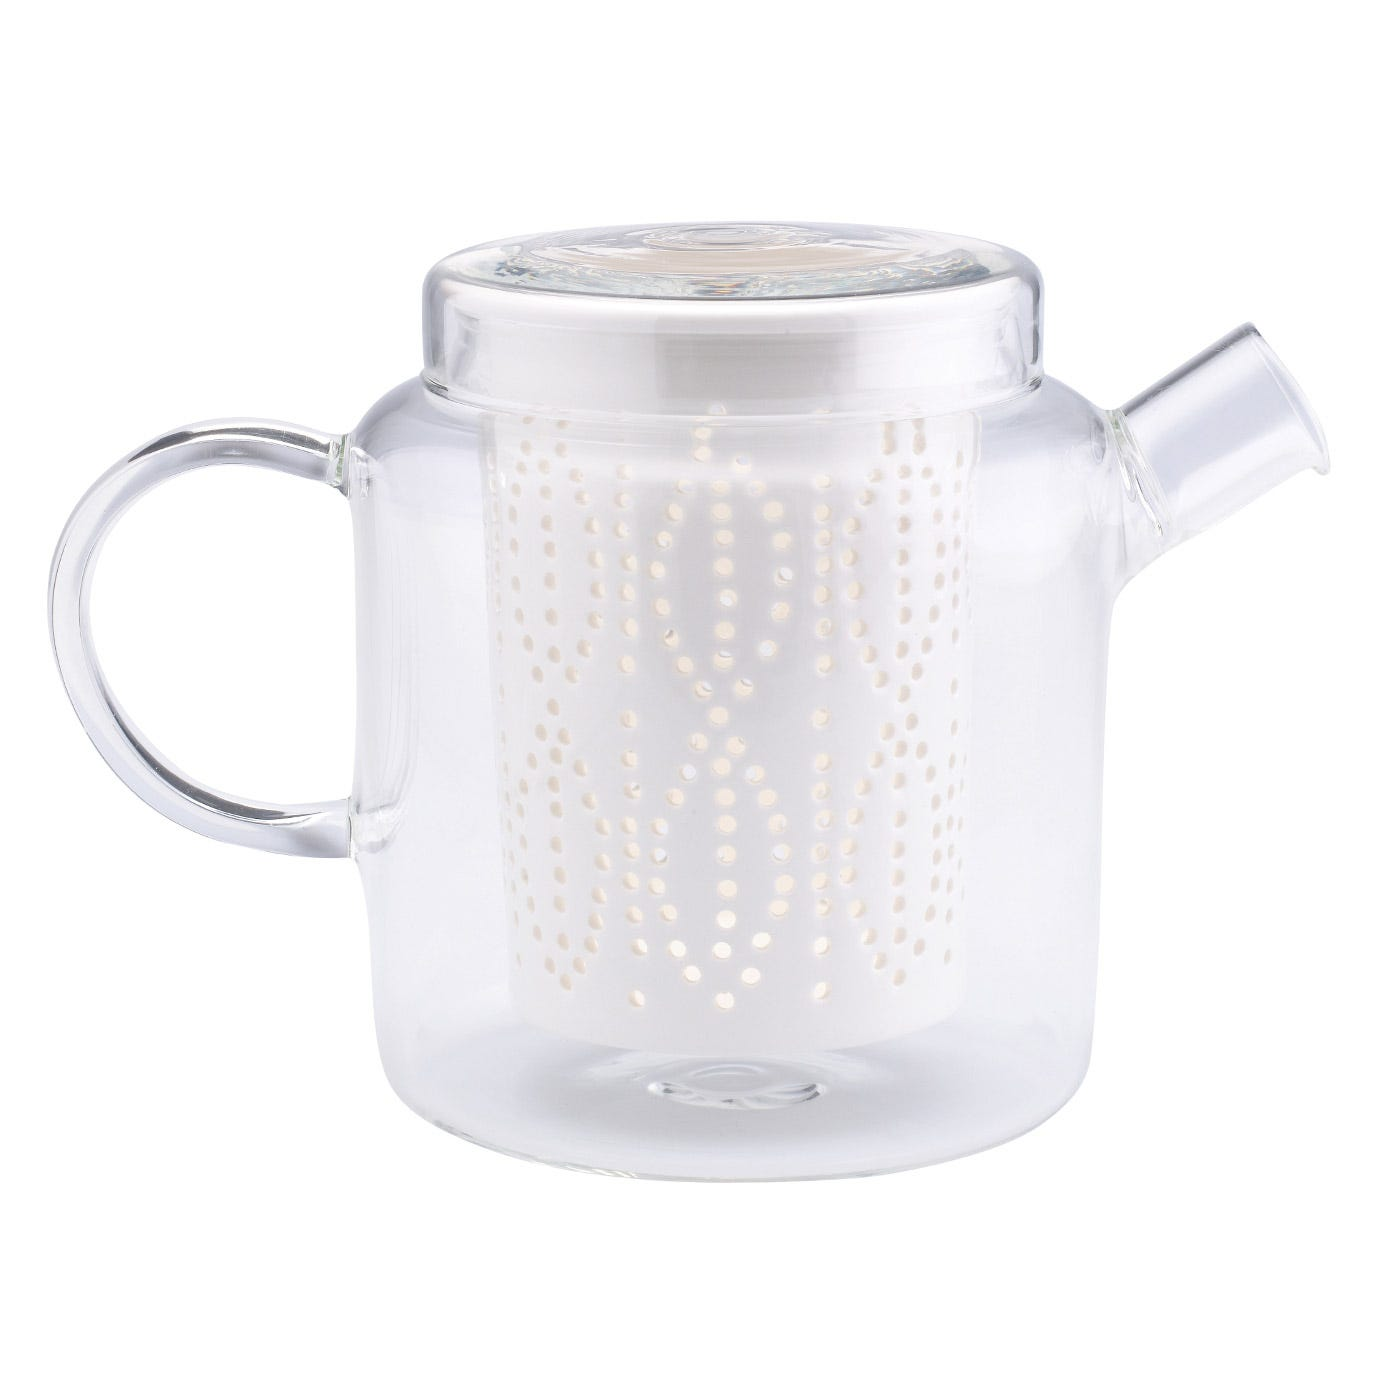 Glass Teapot With Porcelain Infuser 700ml